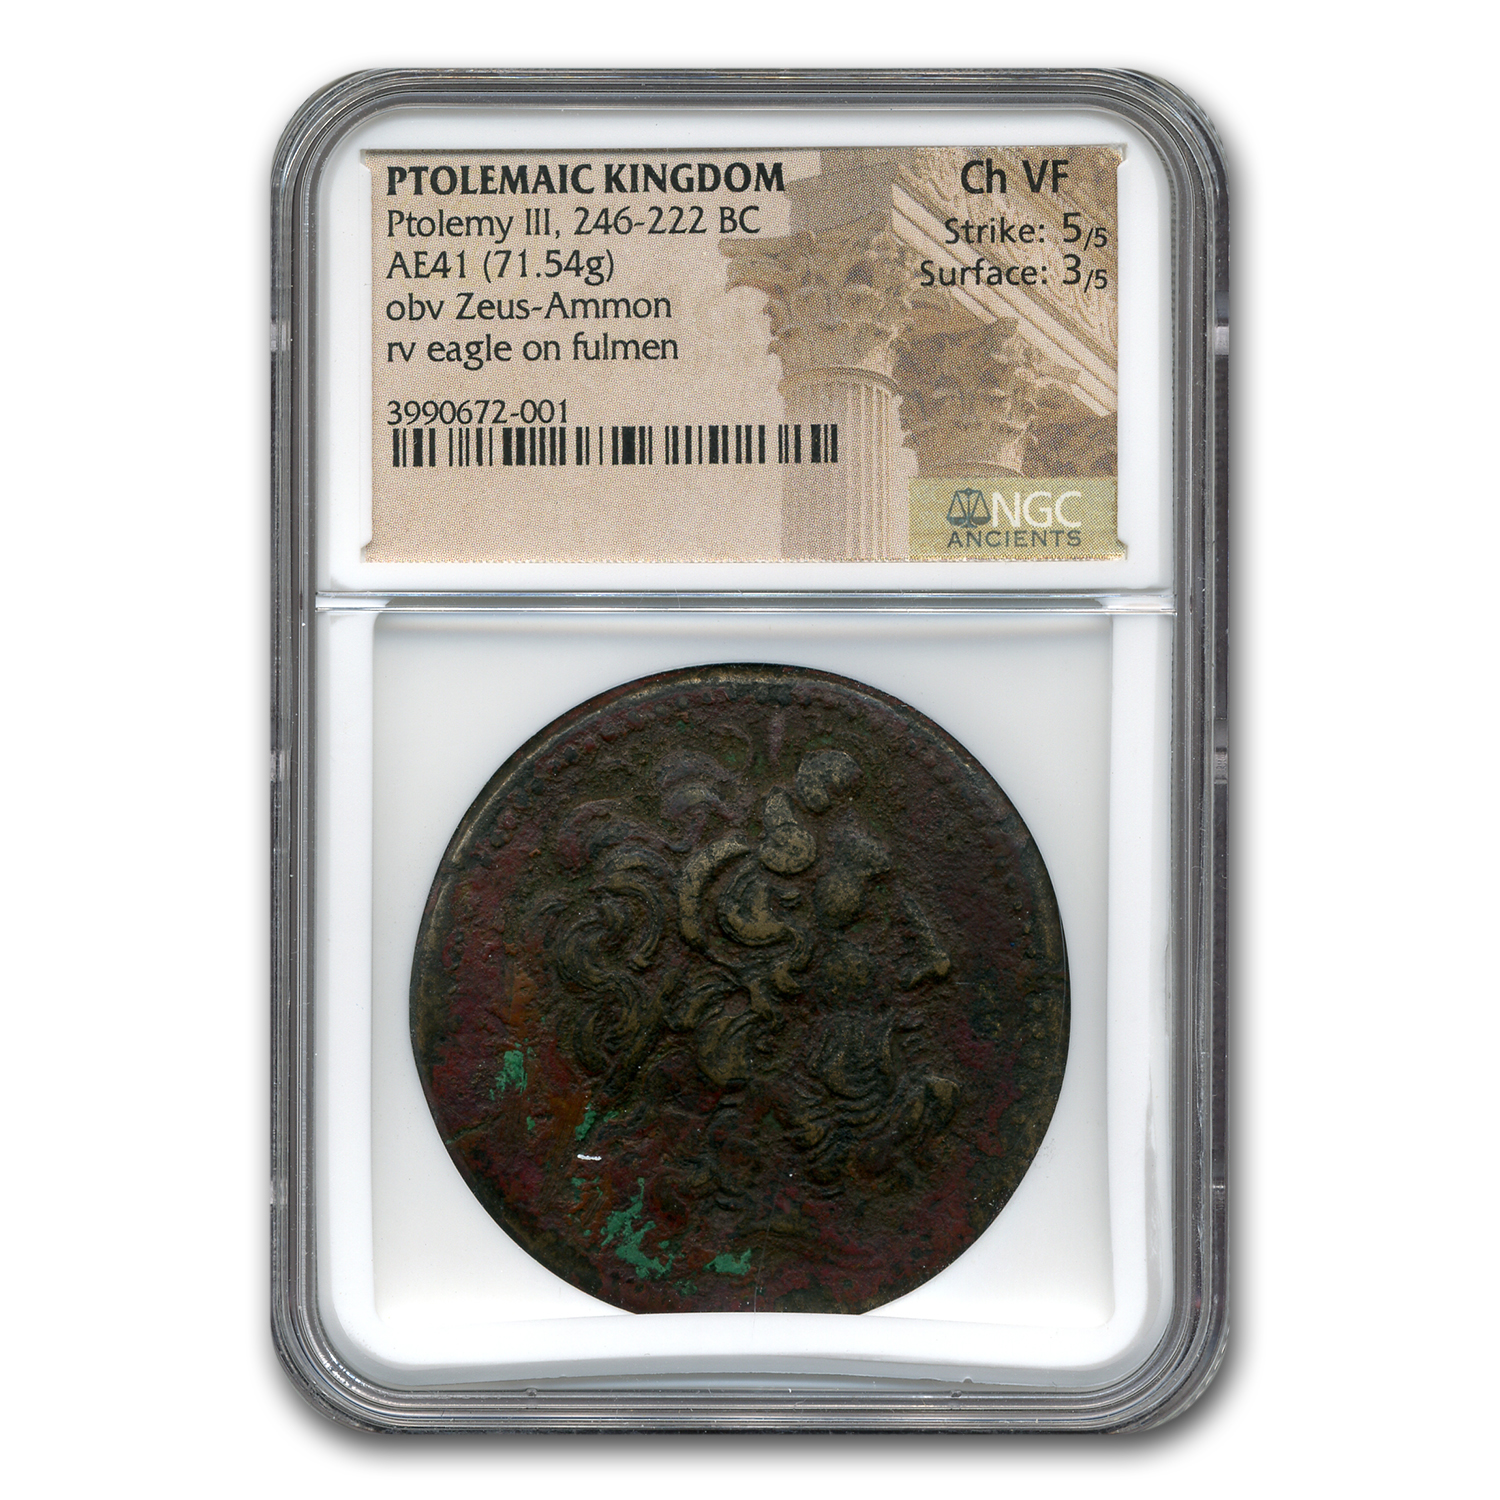 Ptolemaic Bronze Emperor Ptolemy III (246-222 BC) Ch VF NGC